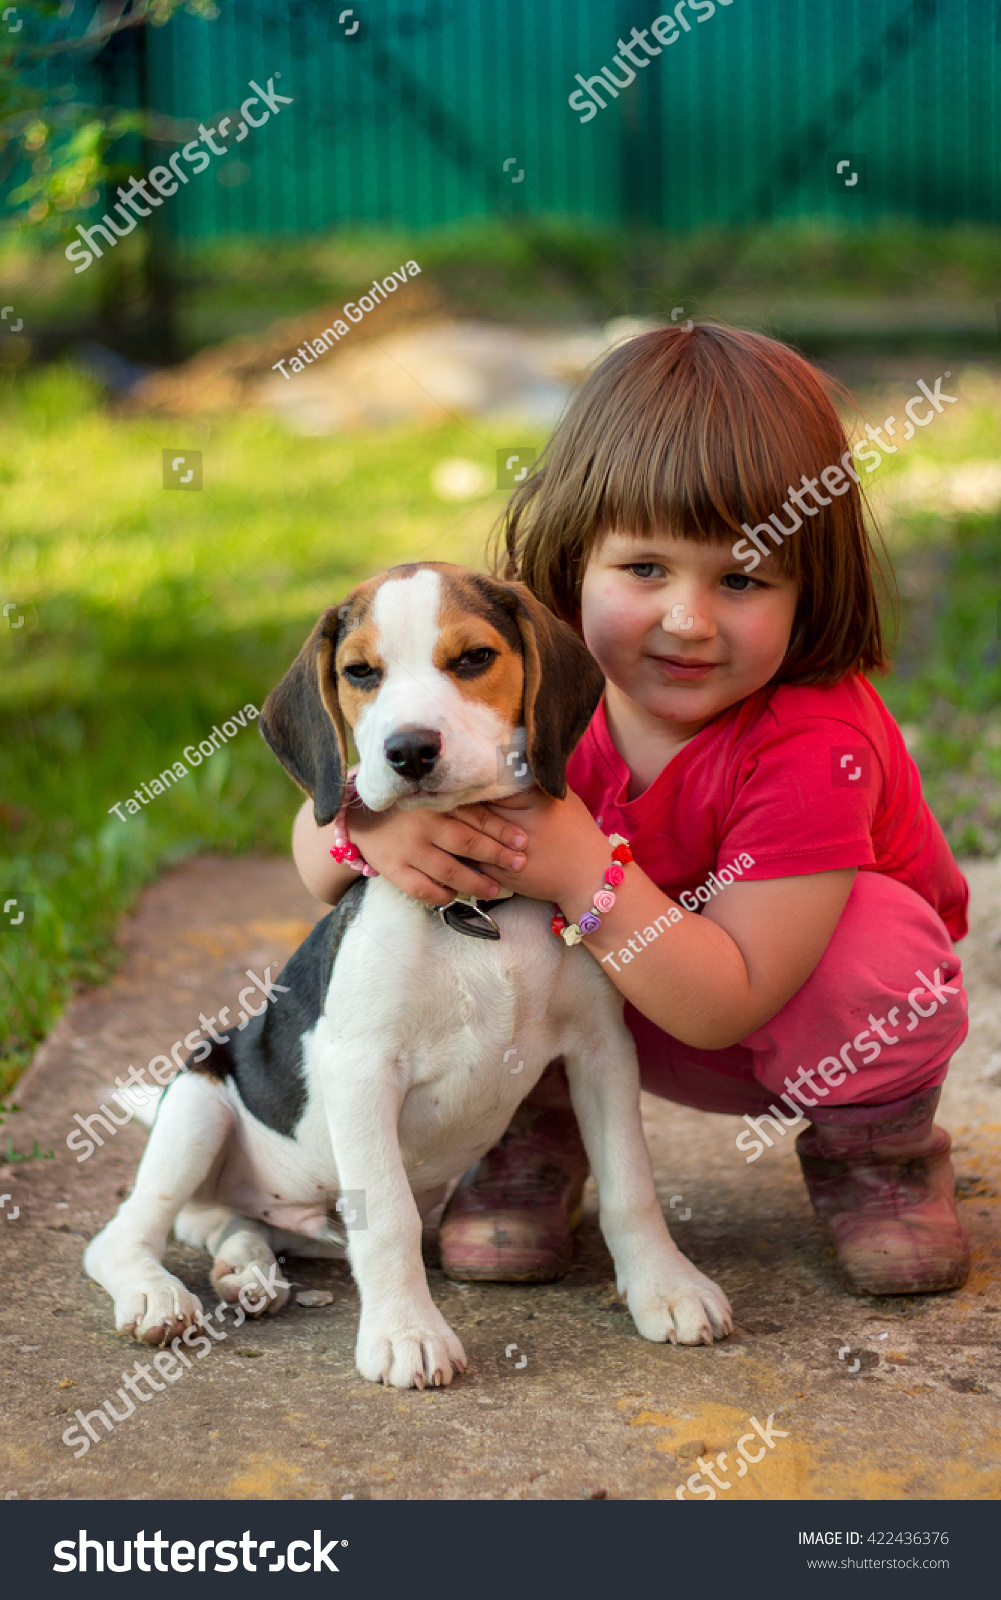 Cute Stock Photography: Cute Little Girl Beagle Puppy Stock Photo 422436376